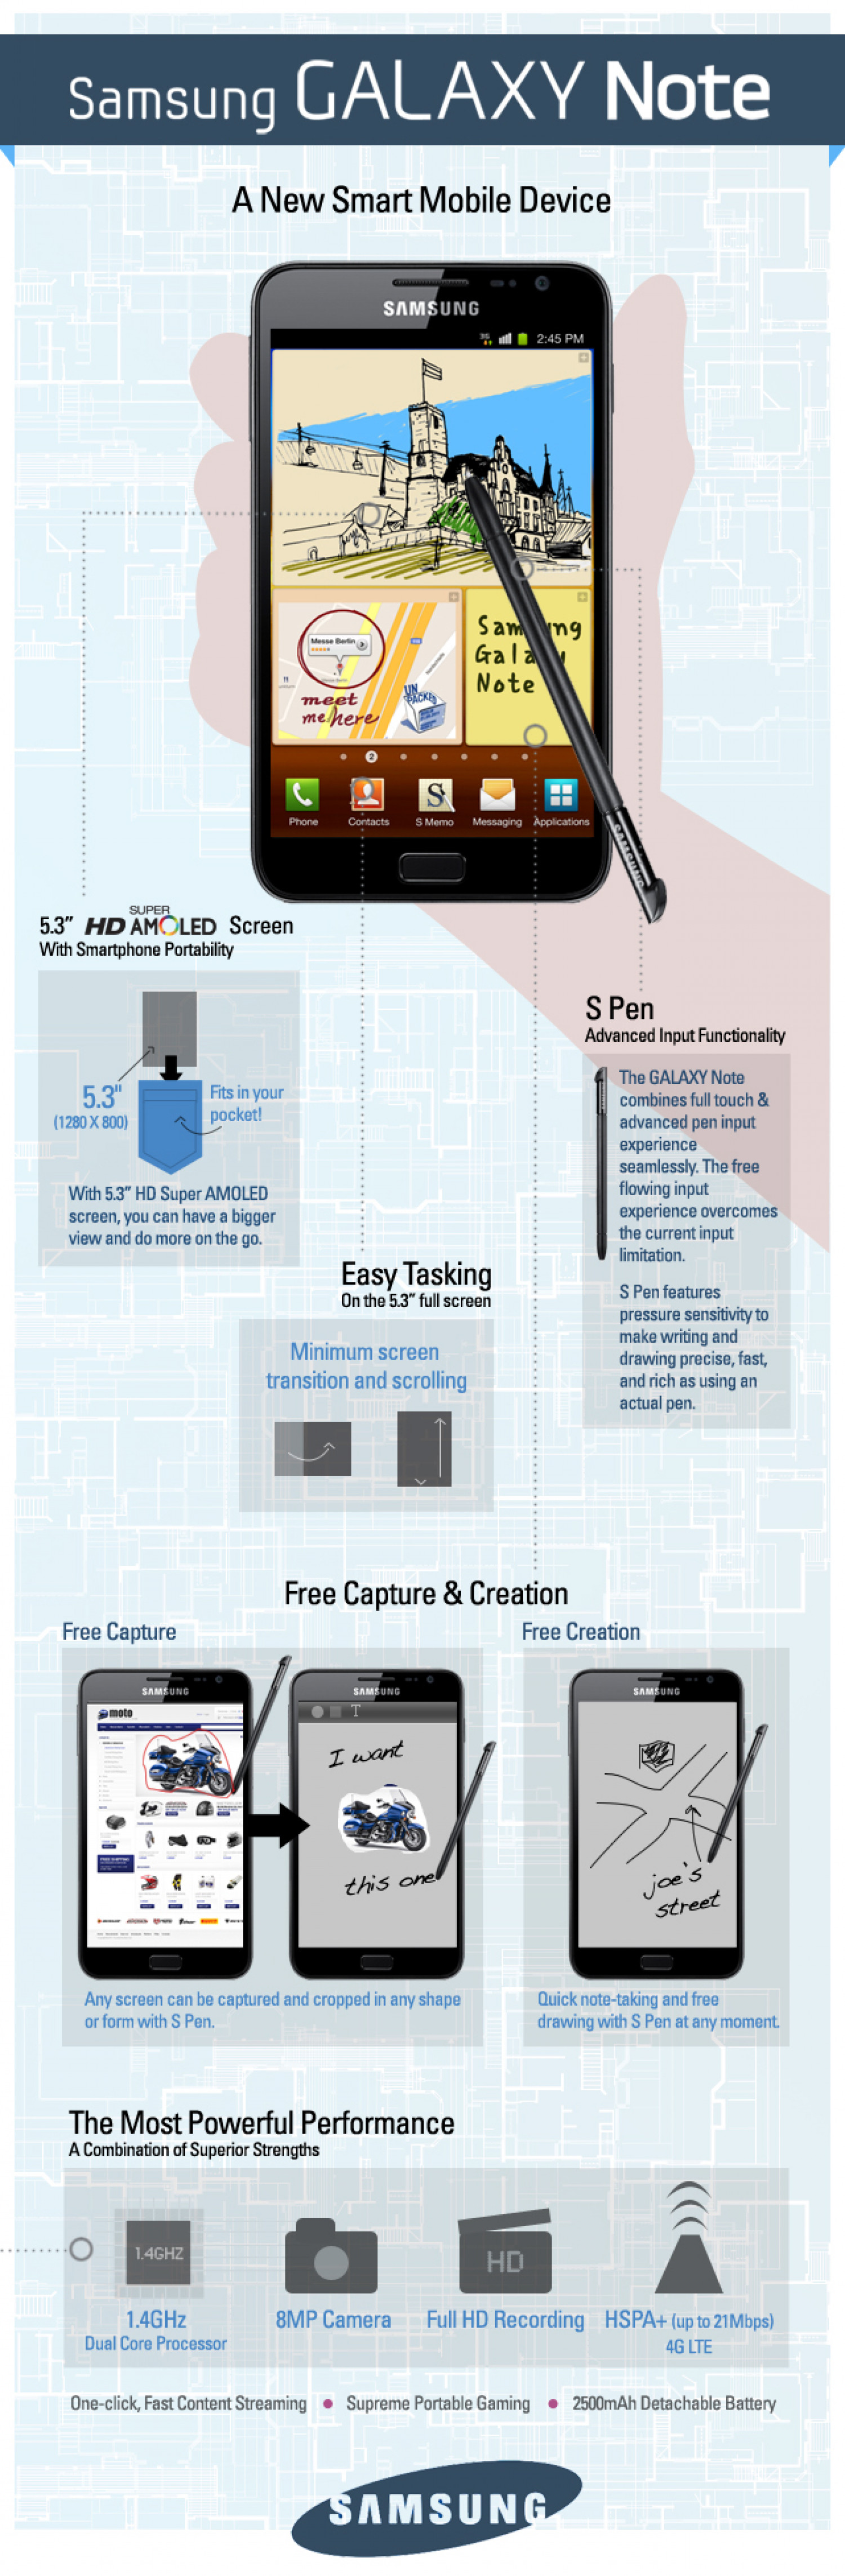 Samsung Super Galaxy Note Plus 5.3 Infographic